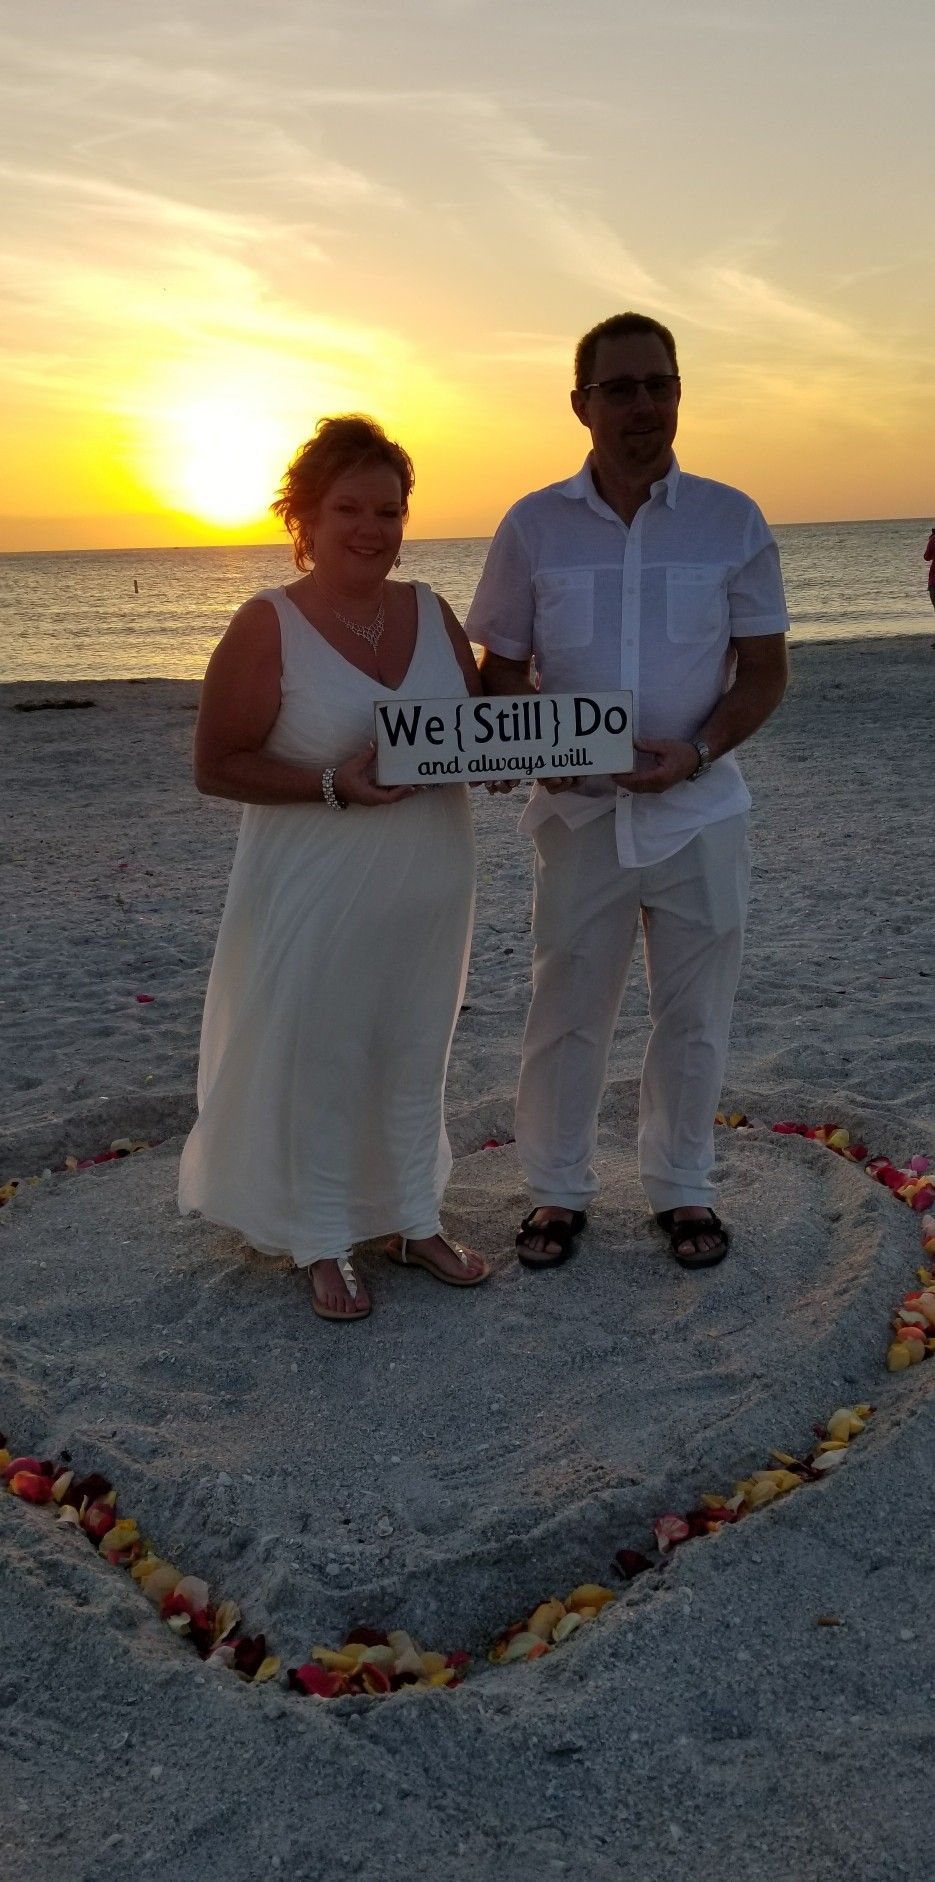 Sunset vow renewal ceremony. Romantic vow renewal ceremony